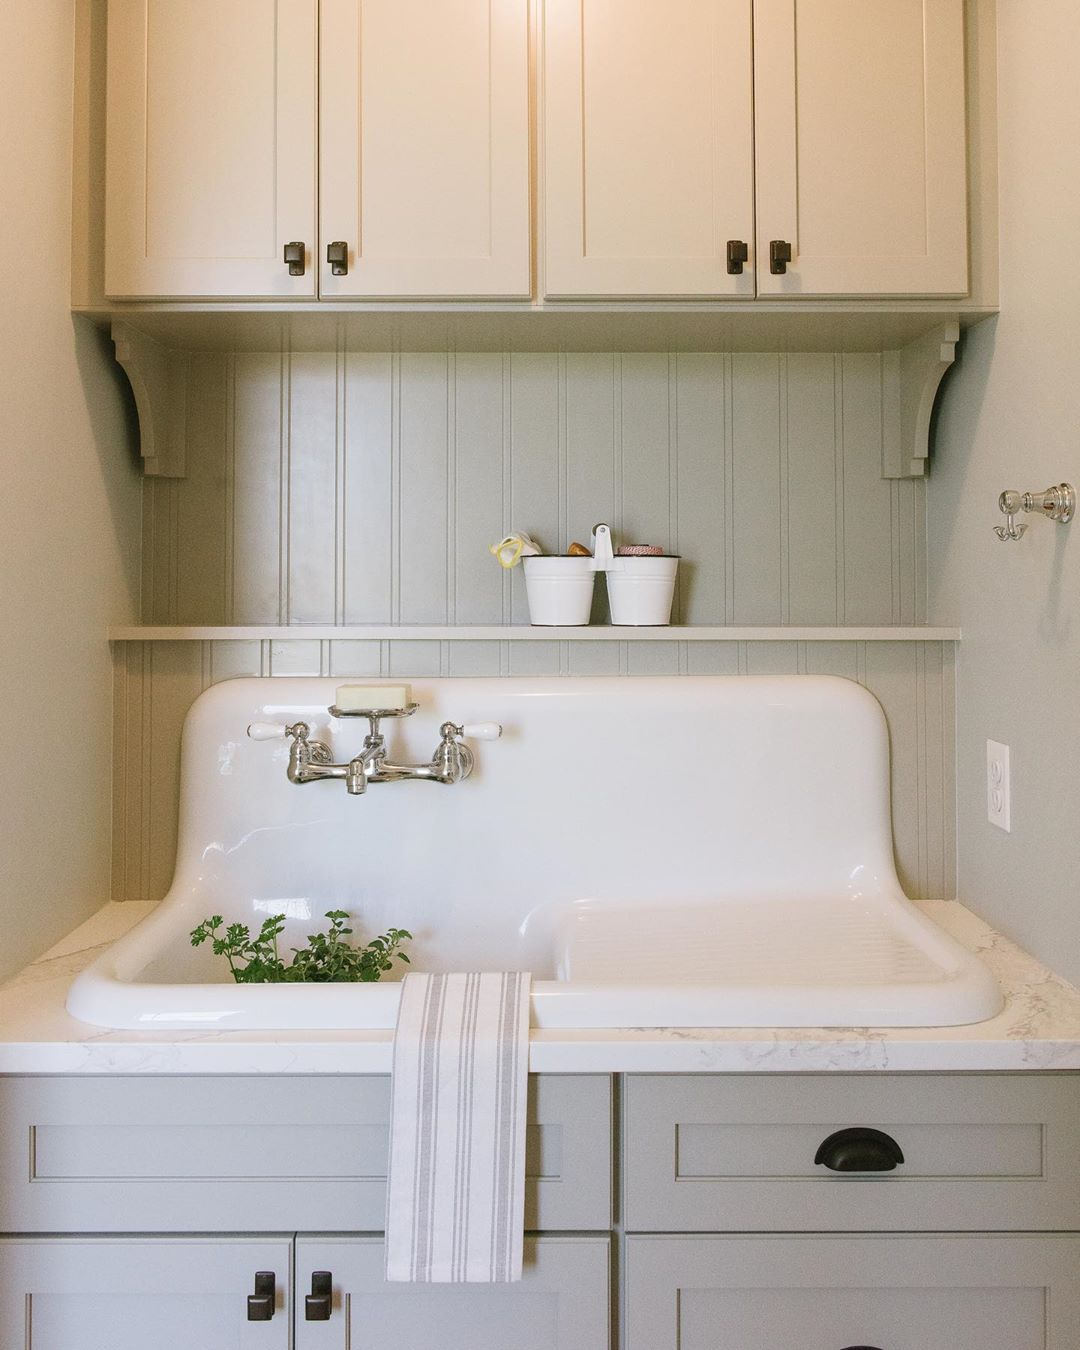 10x10 Laundry Room Layout: Tuscan Blue Had The Best Time Designing The Mudroom Sink